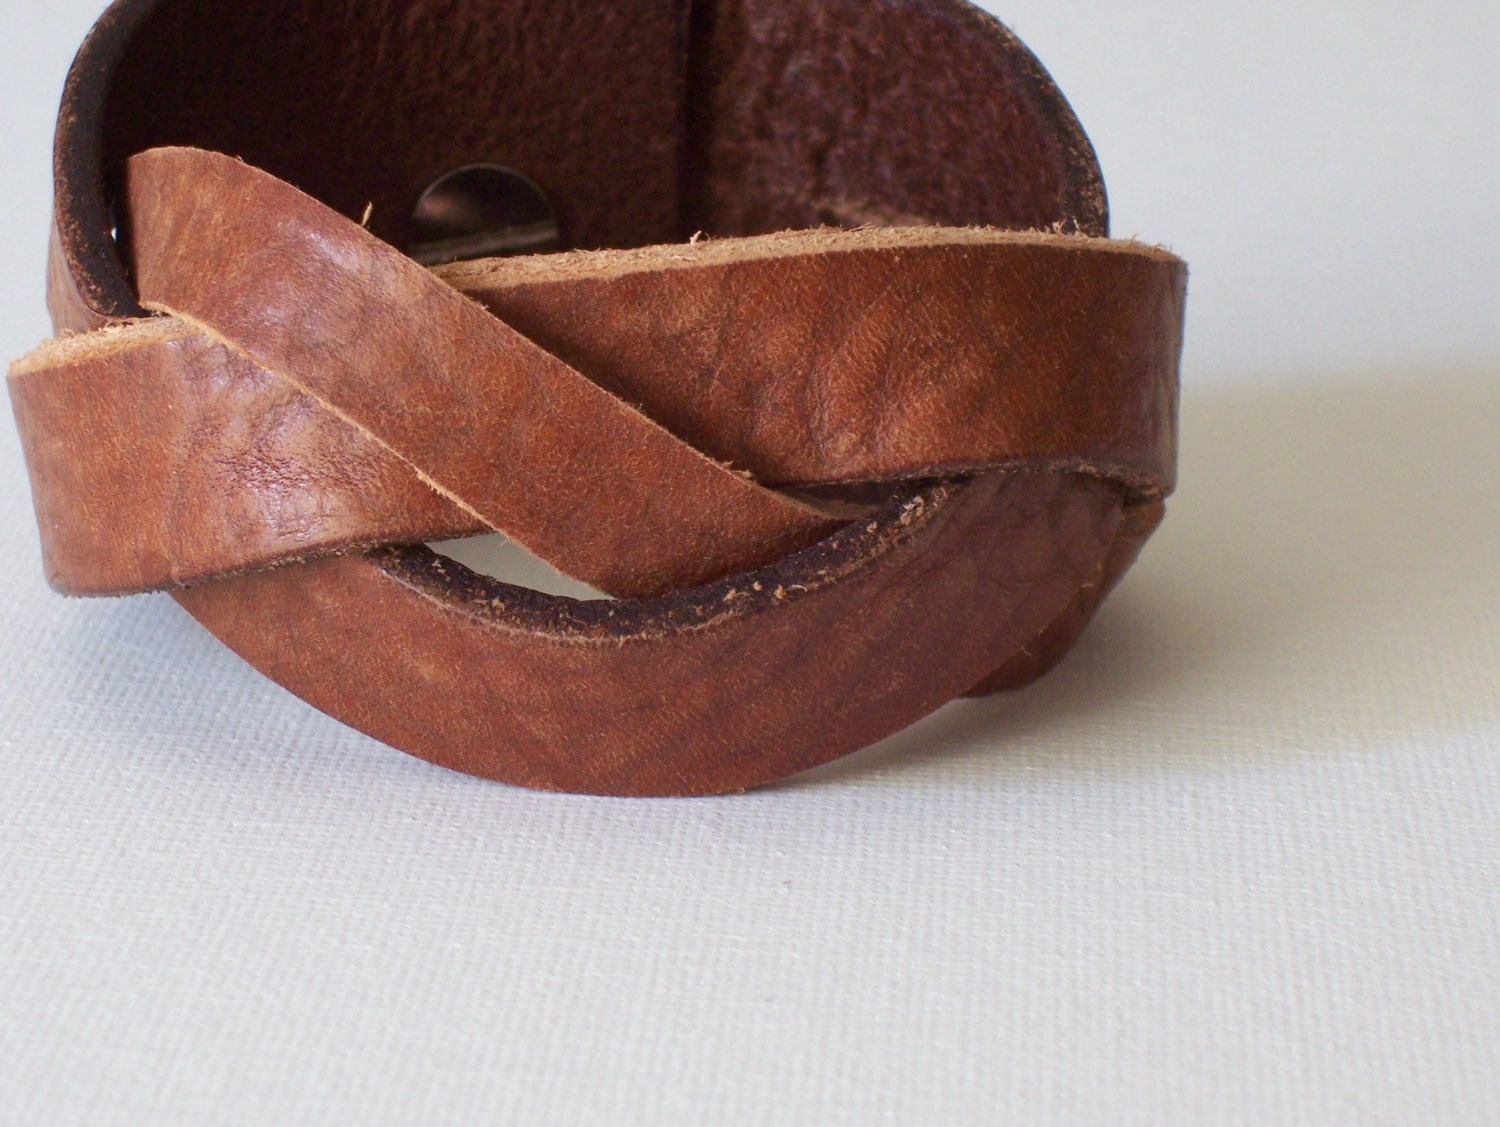 Braided leather cuff bracelet repurposed upcycled reloved Repurposed leather belts